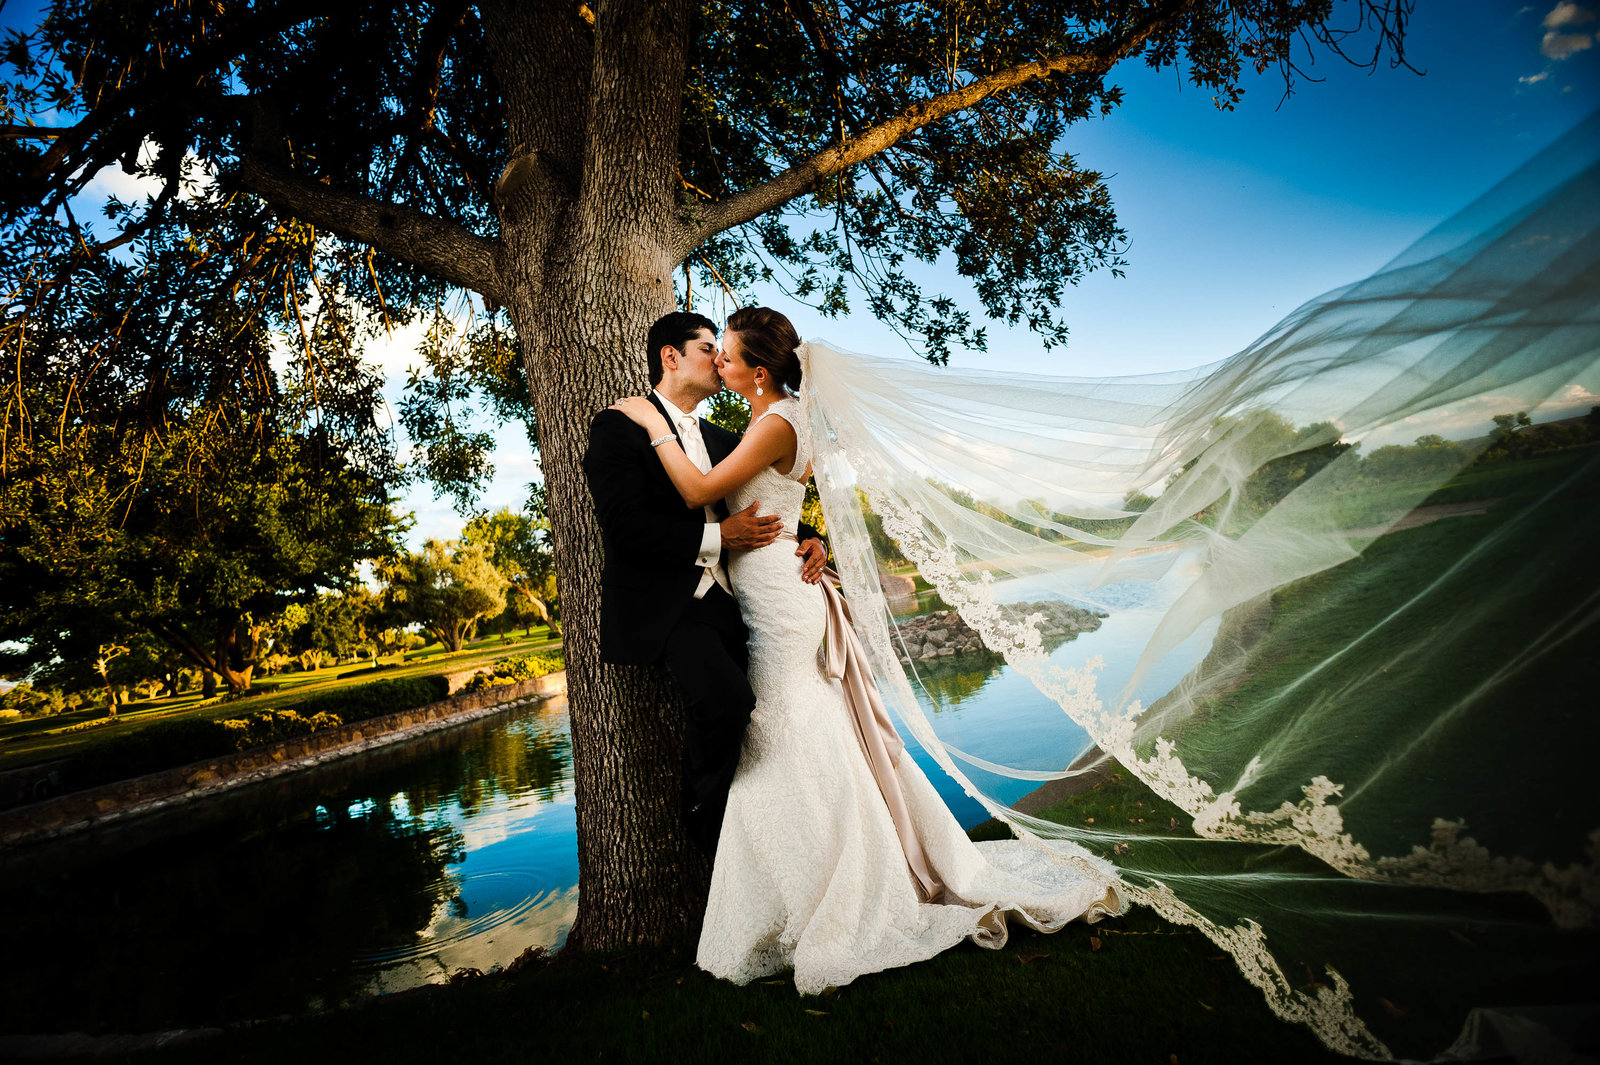 313-El-paso-wedding-photographer-El Paso Wedding Photographer_P80